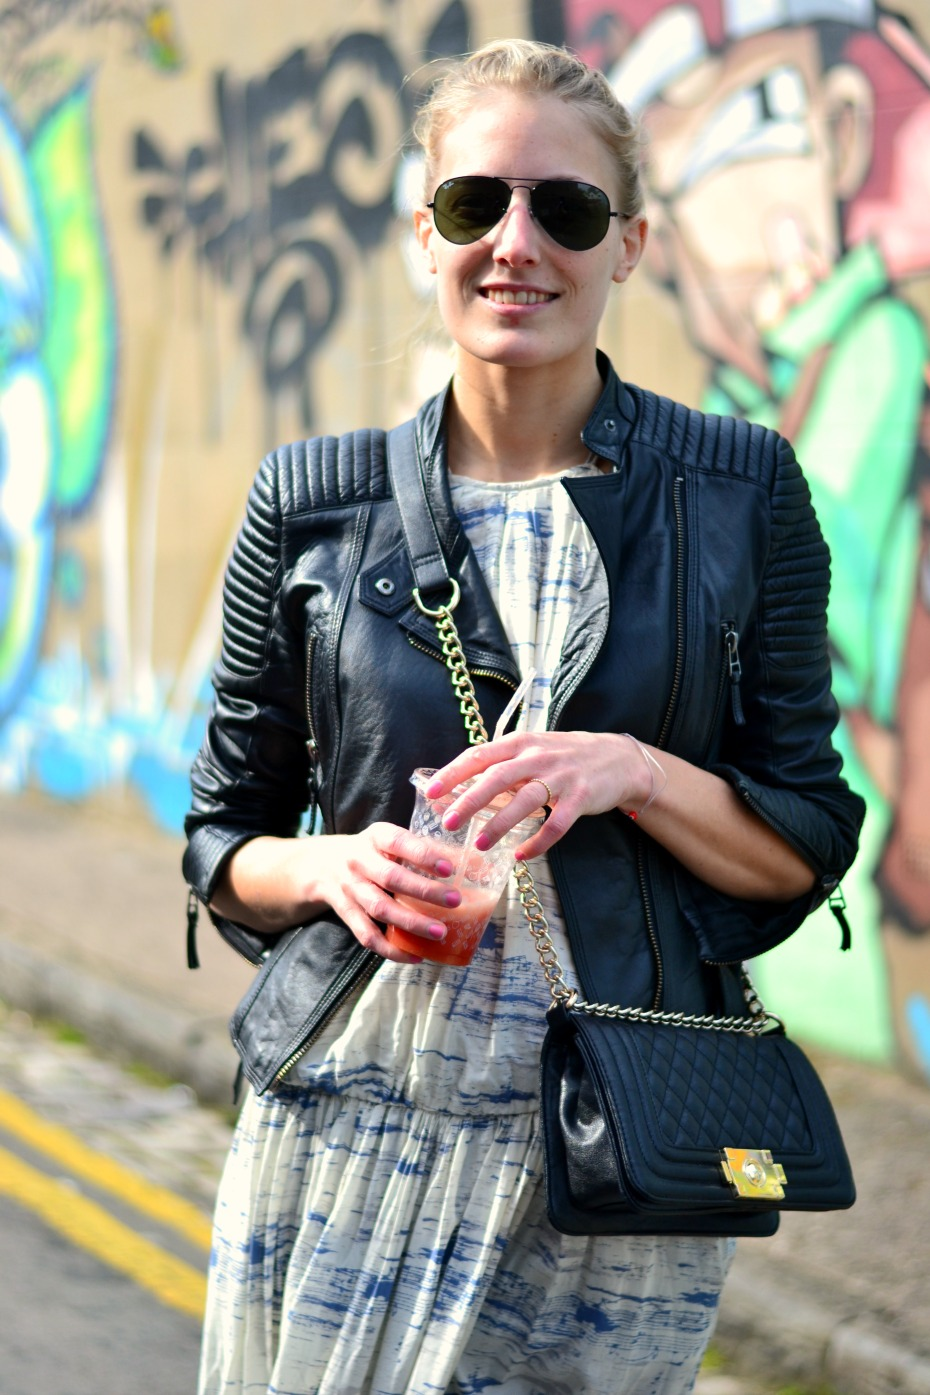 moxy copenhagen dress_chanel espadrilles_zara leather jacket1